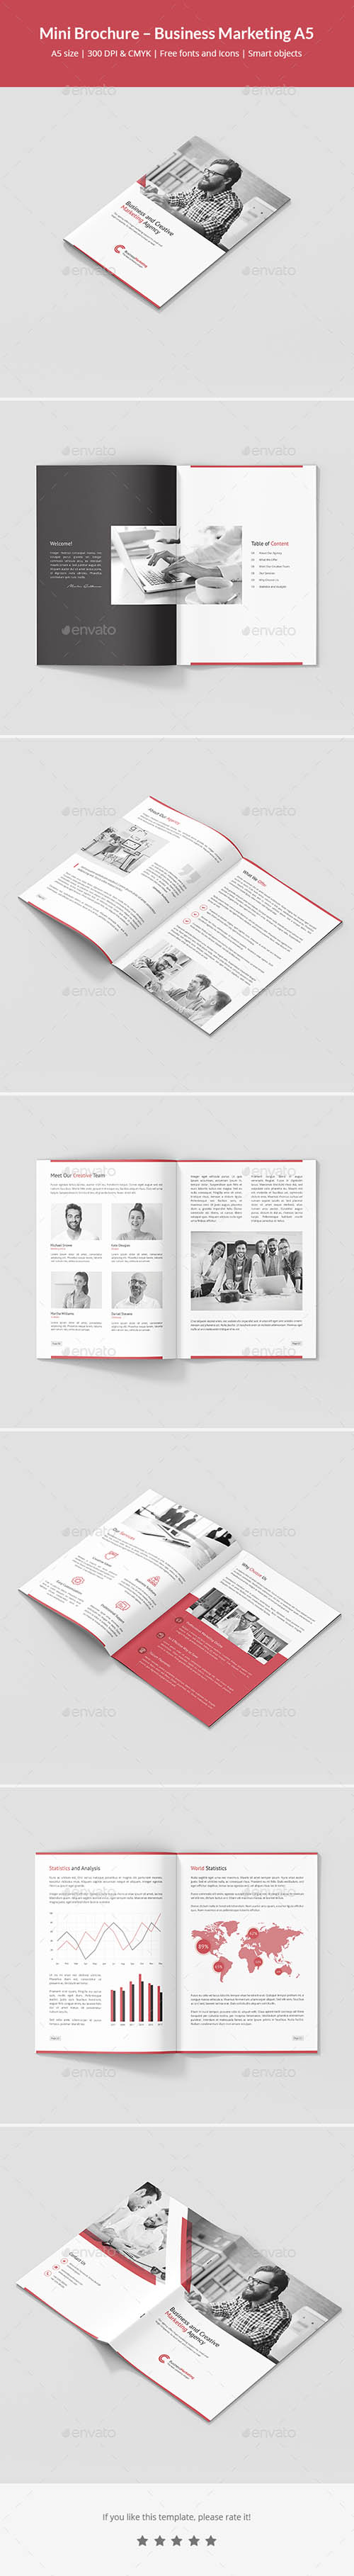 Mini Brochure – Business Marketing A5 21453913